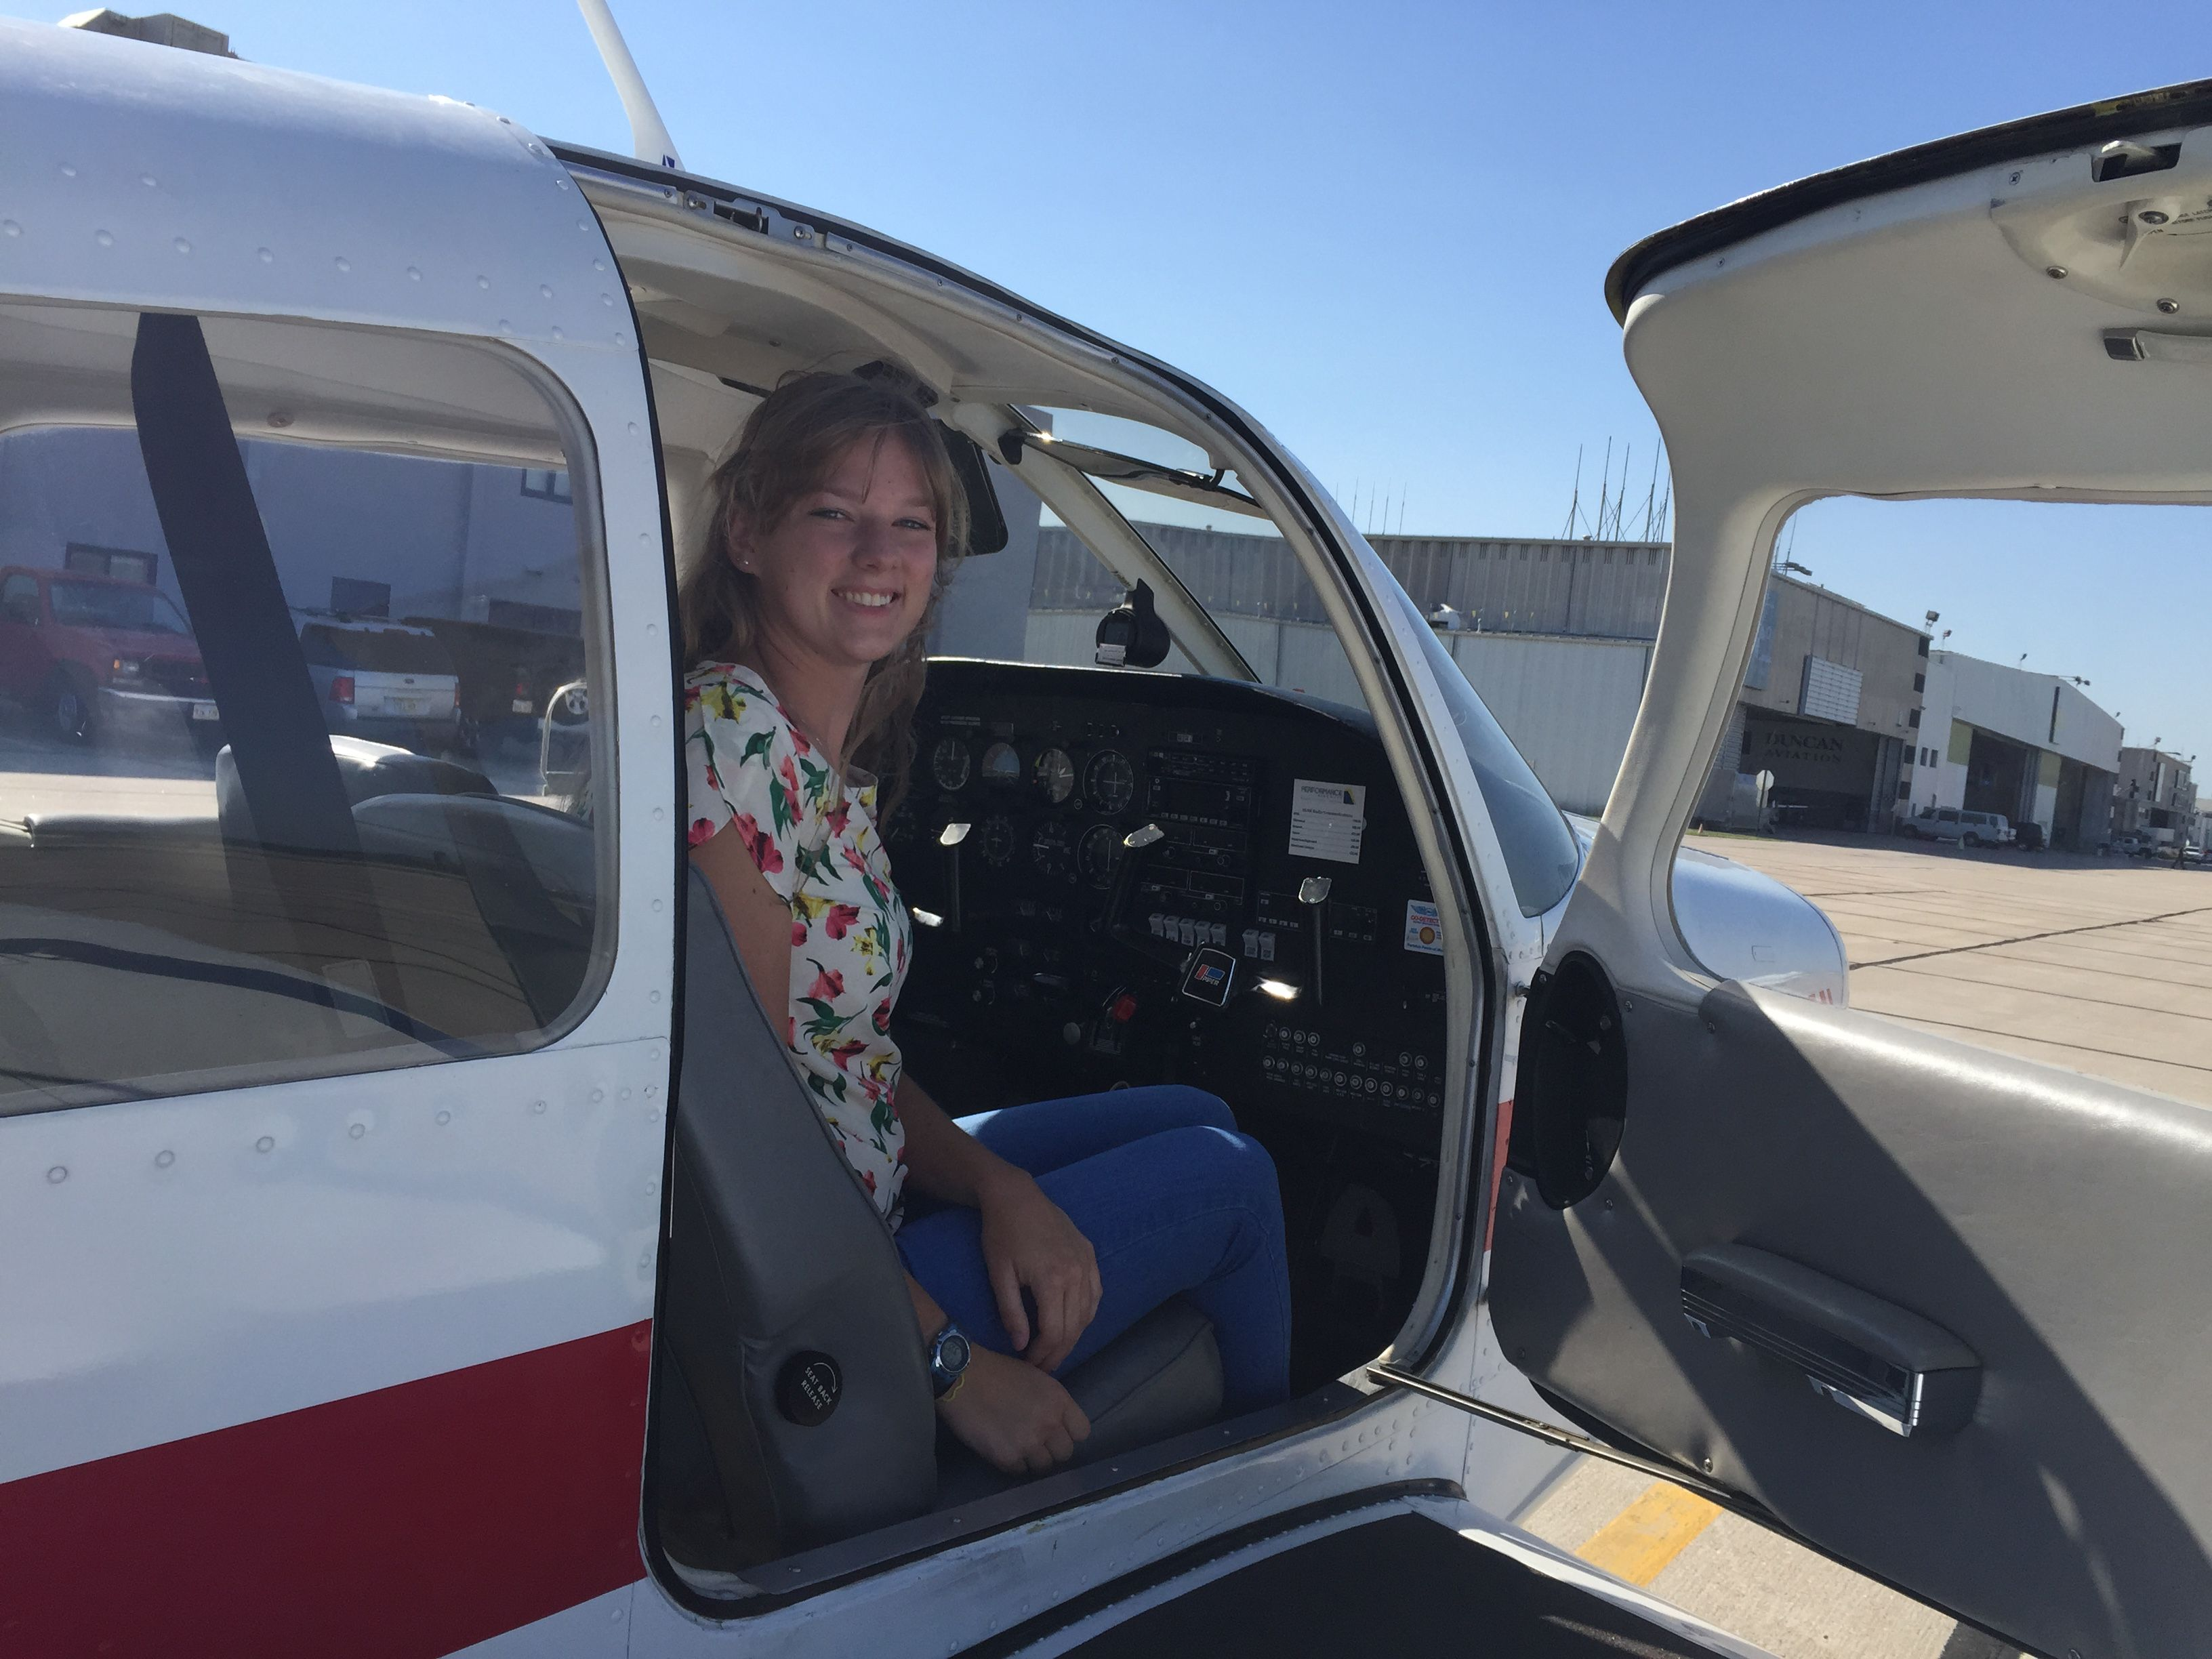 Skyward Bound - An Unexpected Opportunity